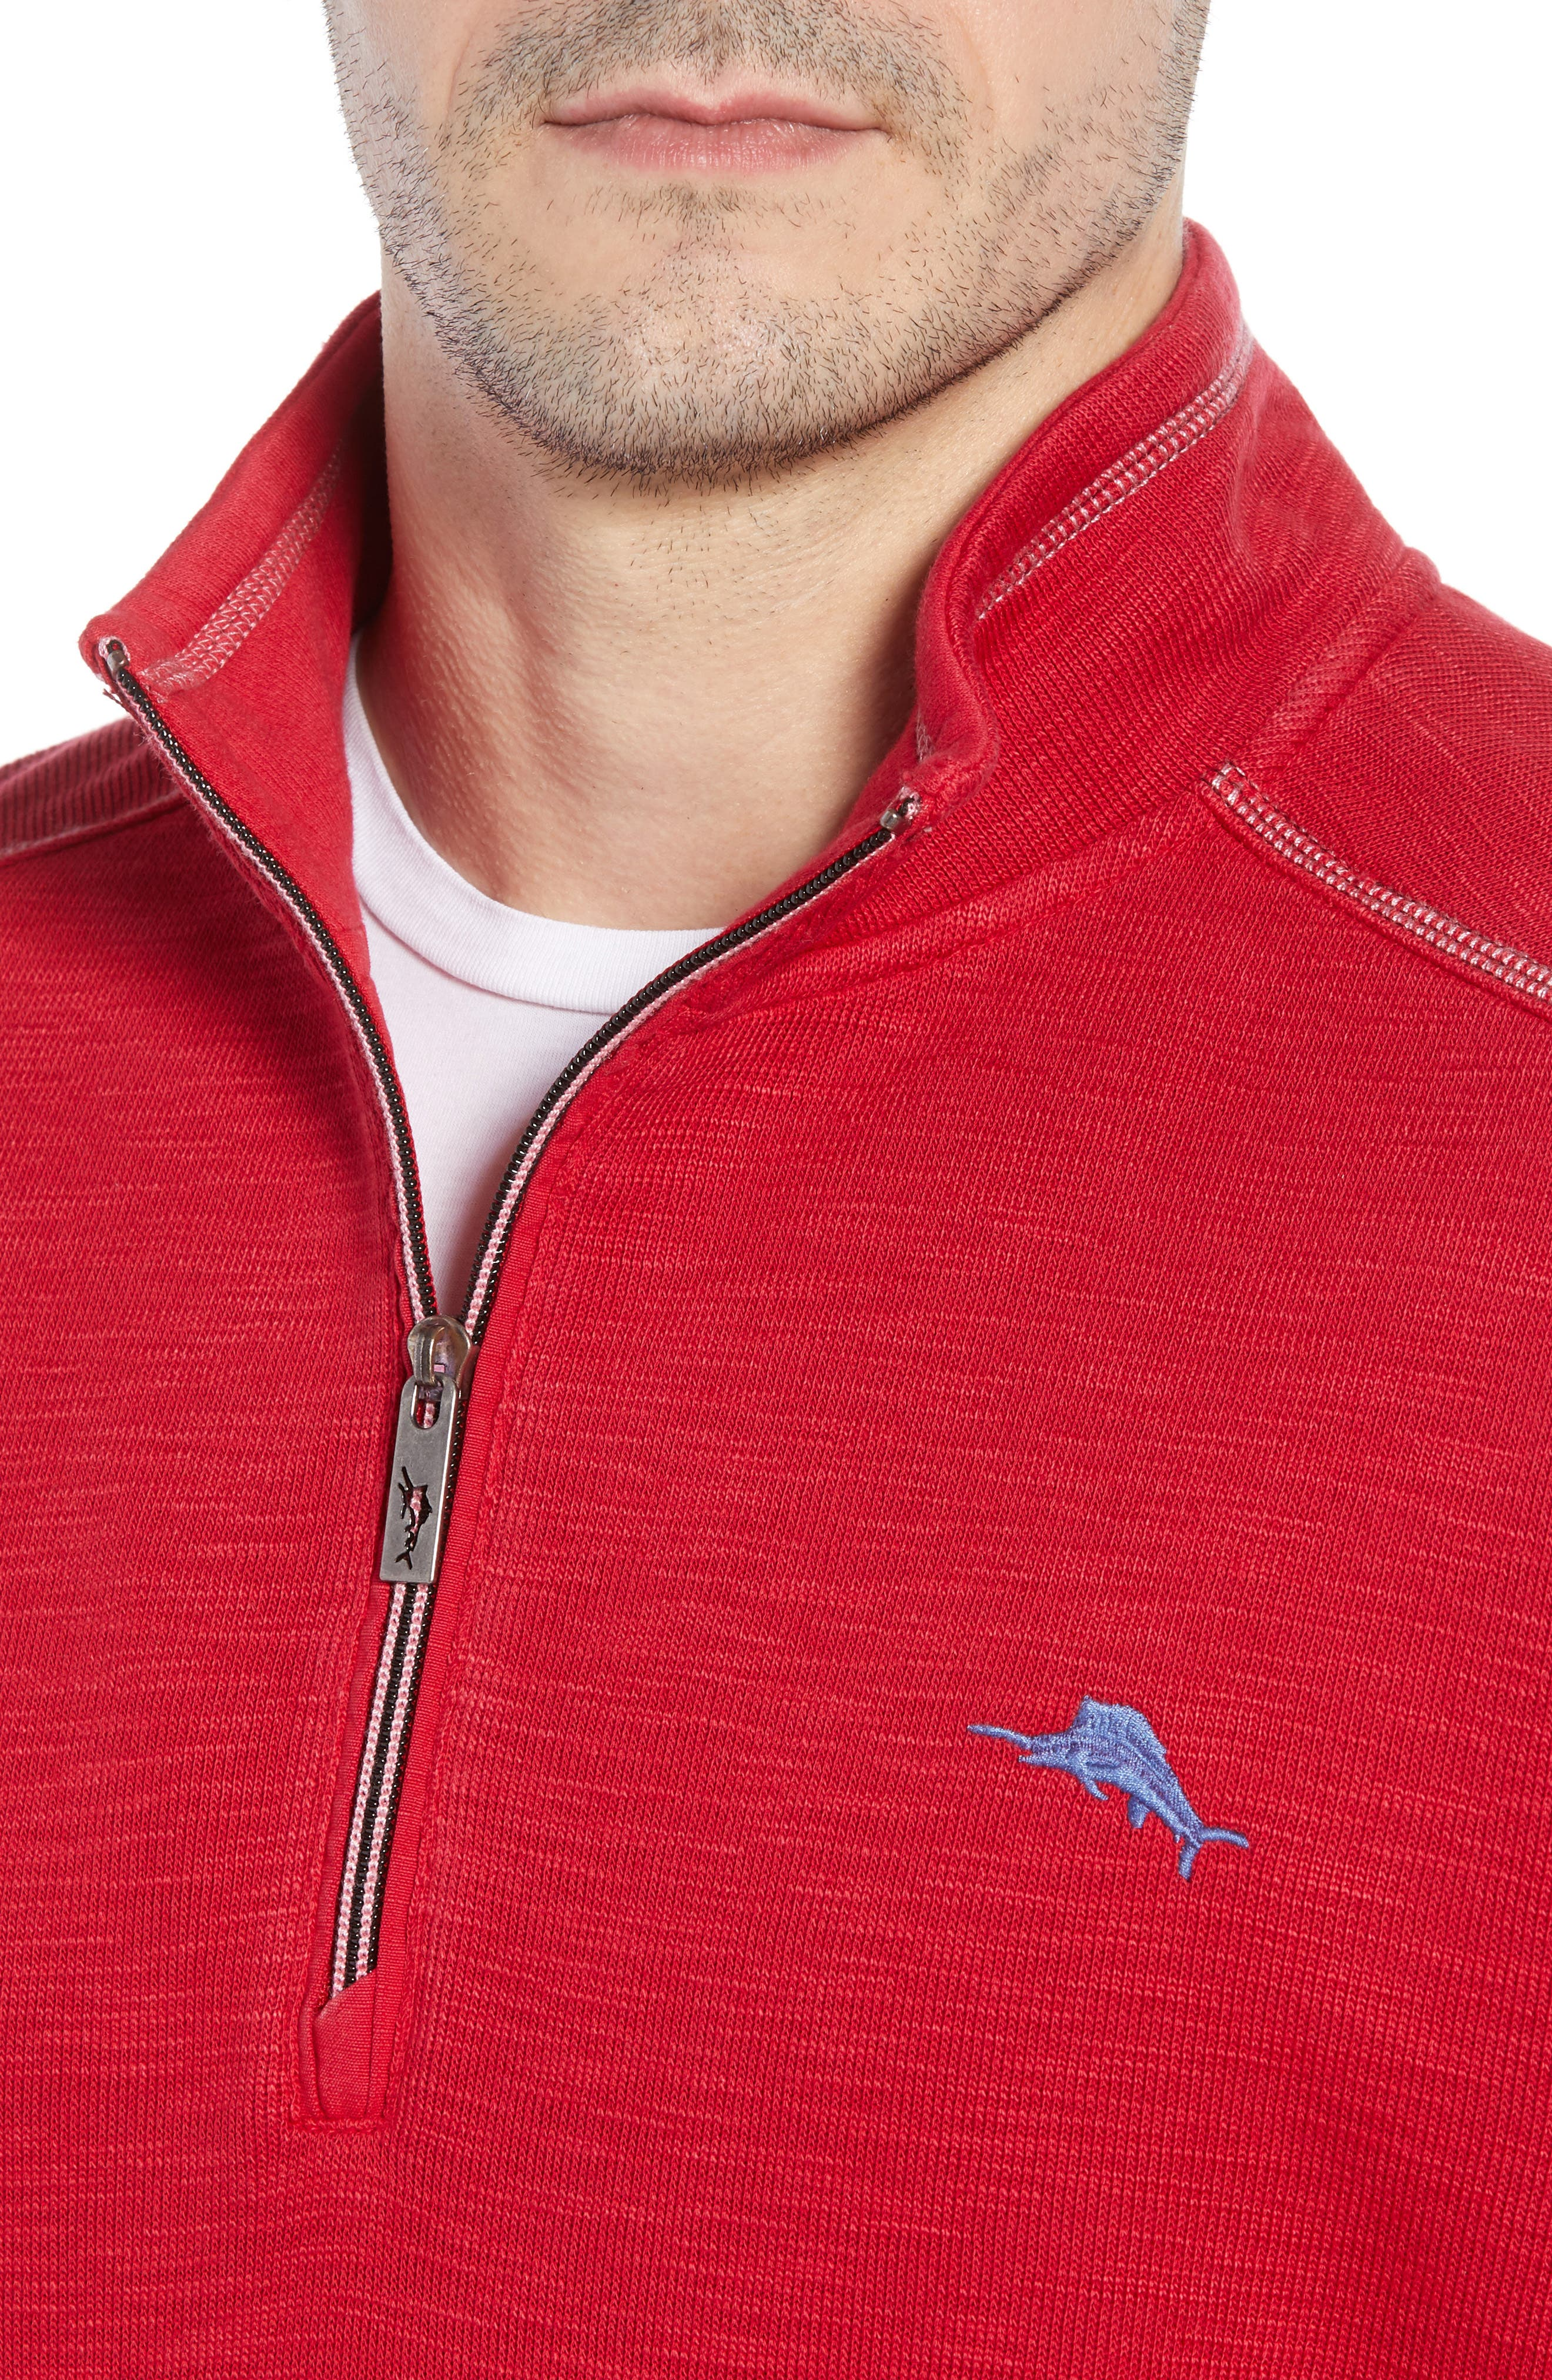 Tobago Bay Half Zip Pullover,                             Alternate thumbnail 4, color,                             SCOOTER RED